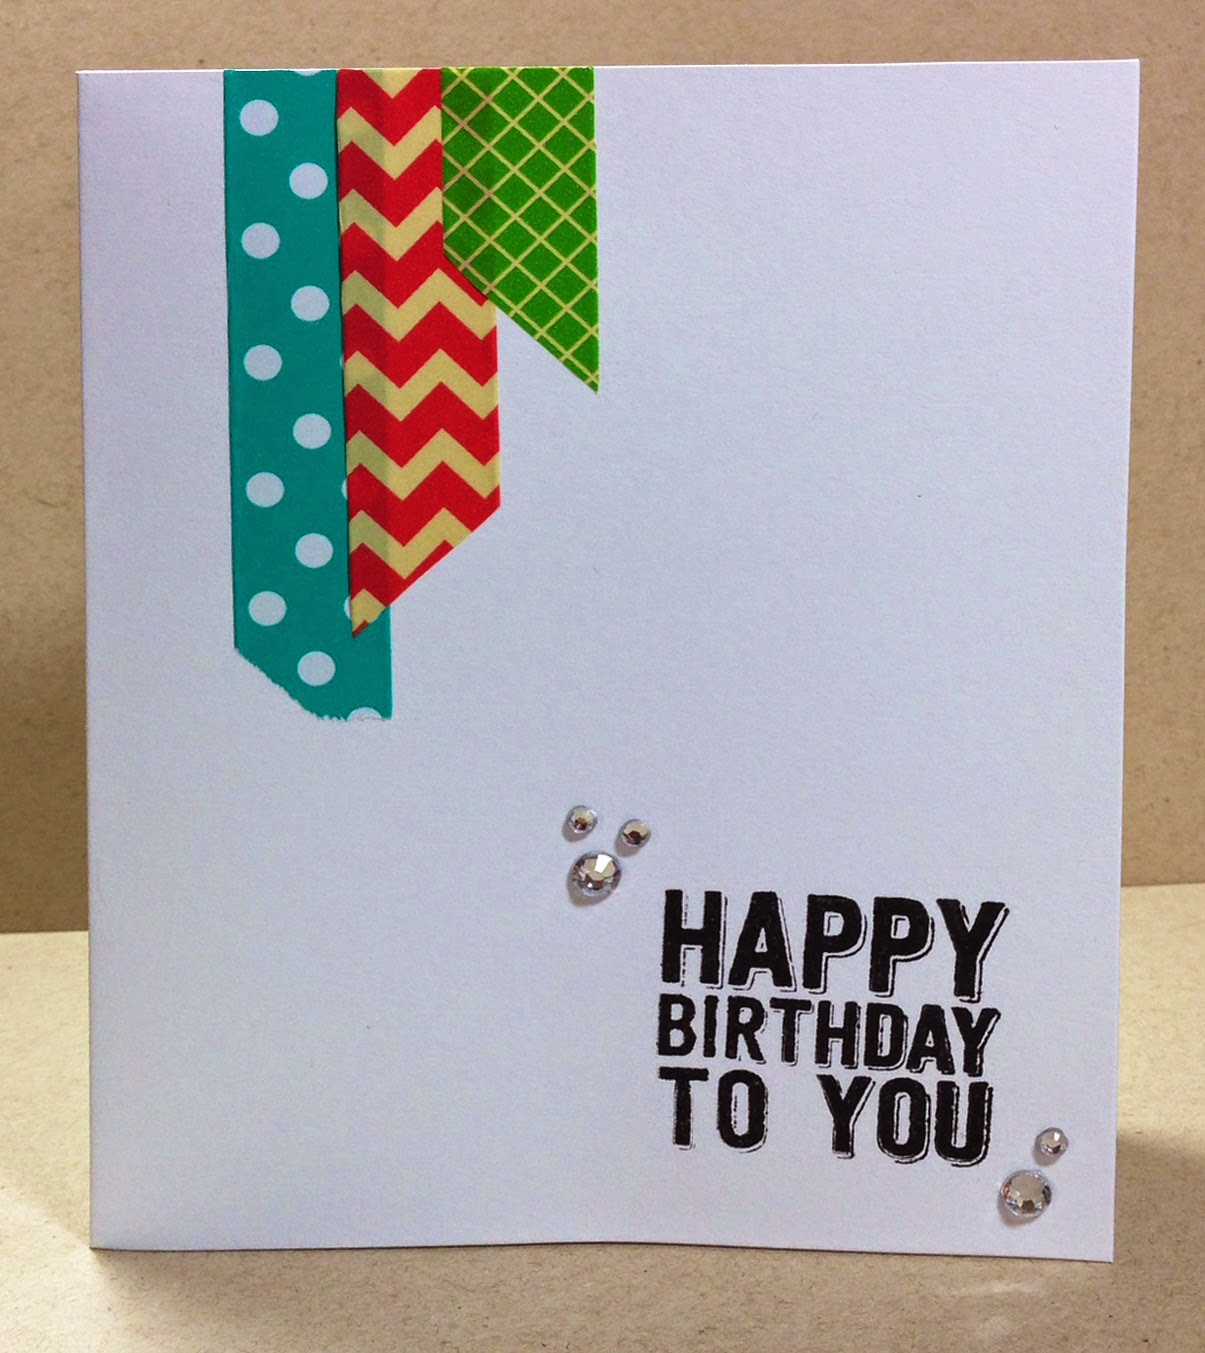 Hampton art blog quick and easy birthday cards using paper tape quick and easy birthday cards using paper tape by designer joy ott bookmarktalkfo Choice Image